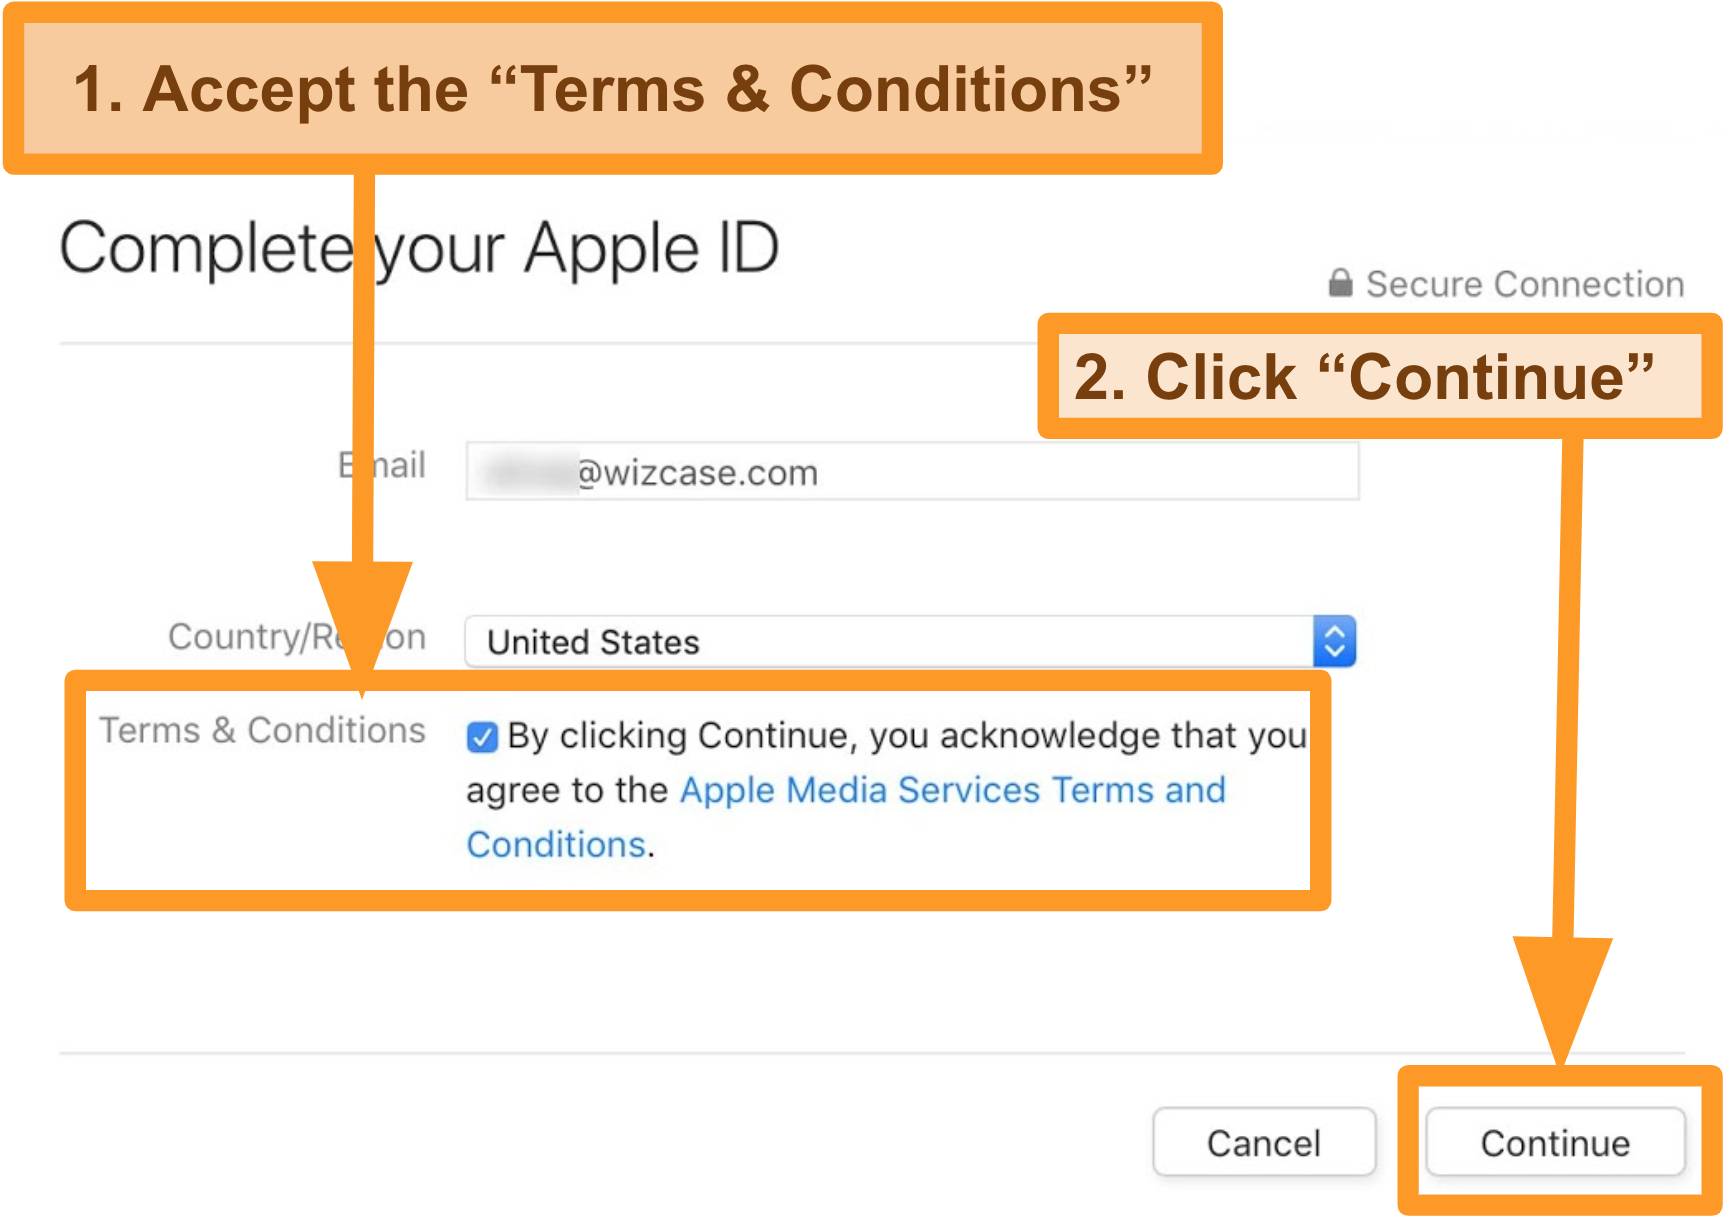 Screenshot of process of agreeing to terms and conditions to complete Apple ID registration for the App Store.